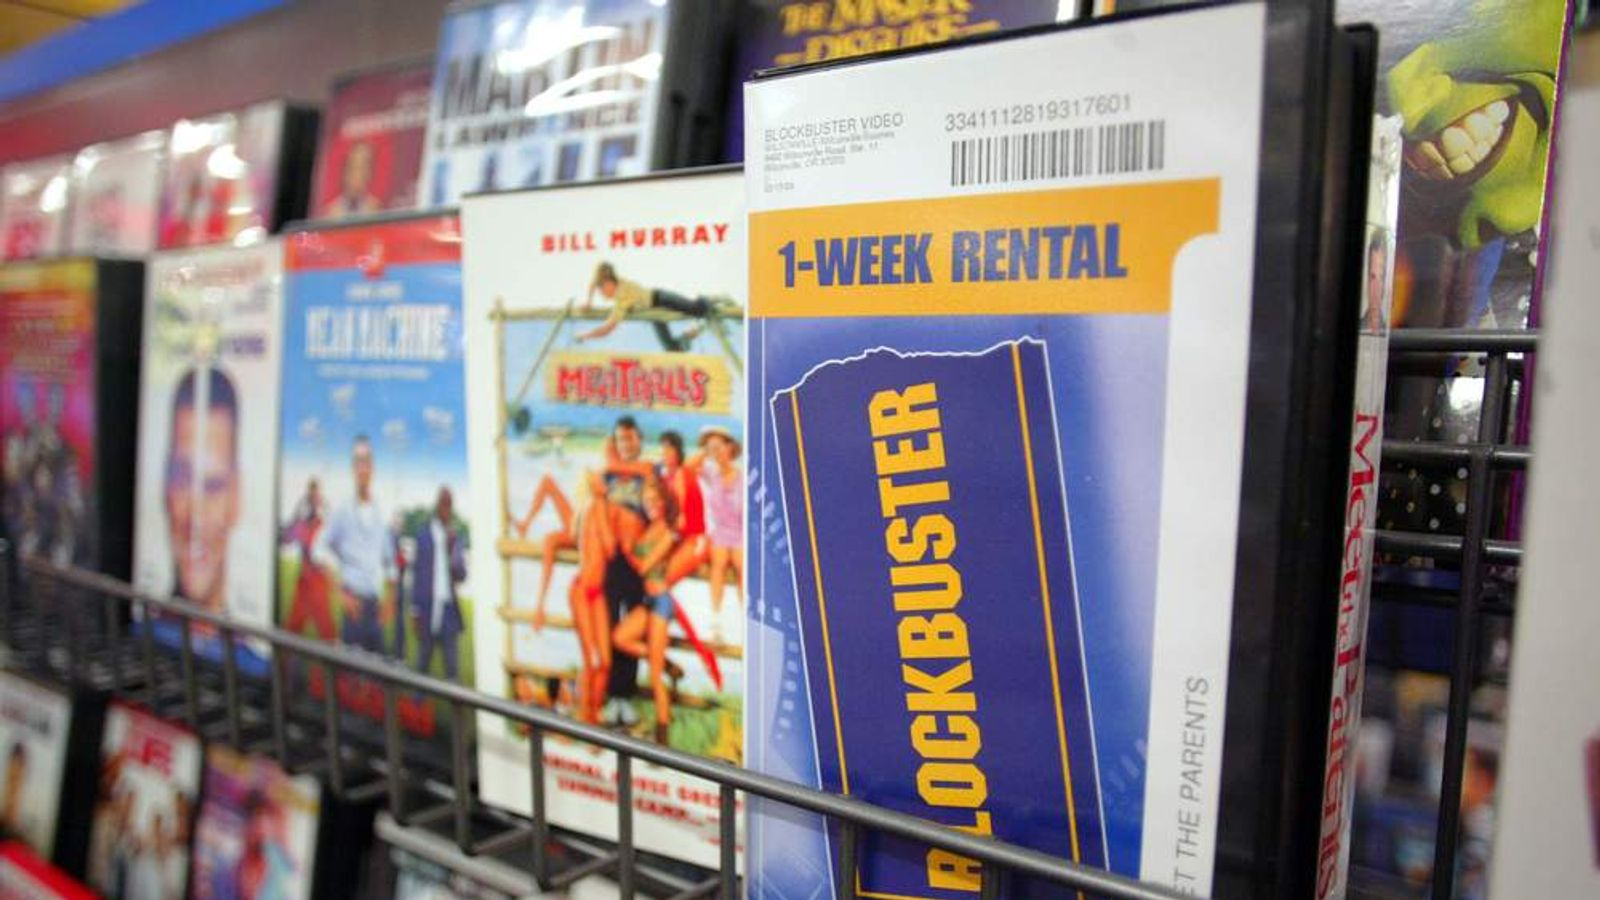 Blockbuster Offers To Buy Competitor Hollywood Video